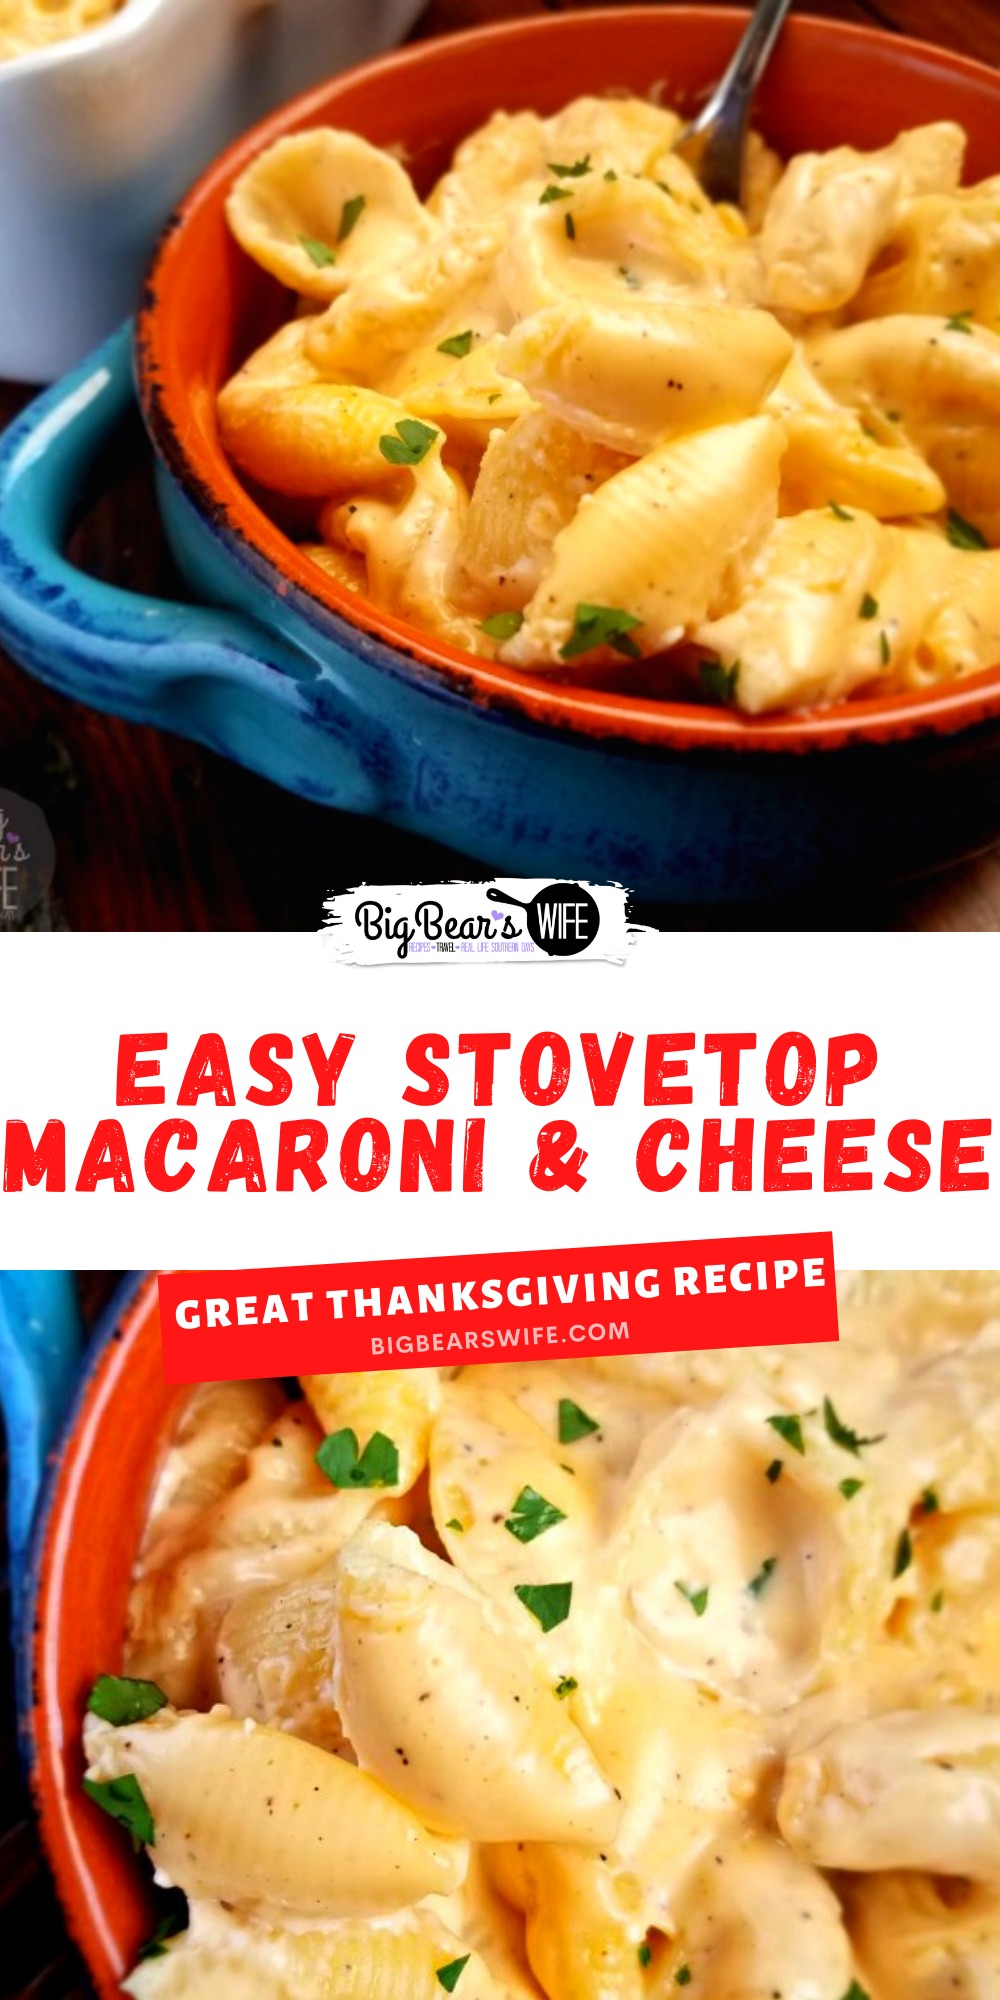 AnEasy Stovetop Macaroni and Cheese that can be whipped up in minutes; so quick to make and such a tasty side dish! via @bigbearswife